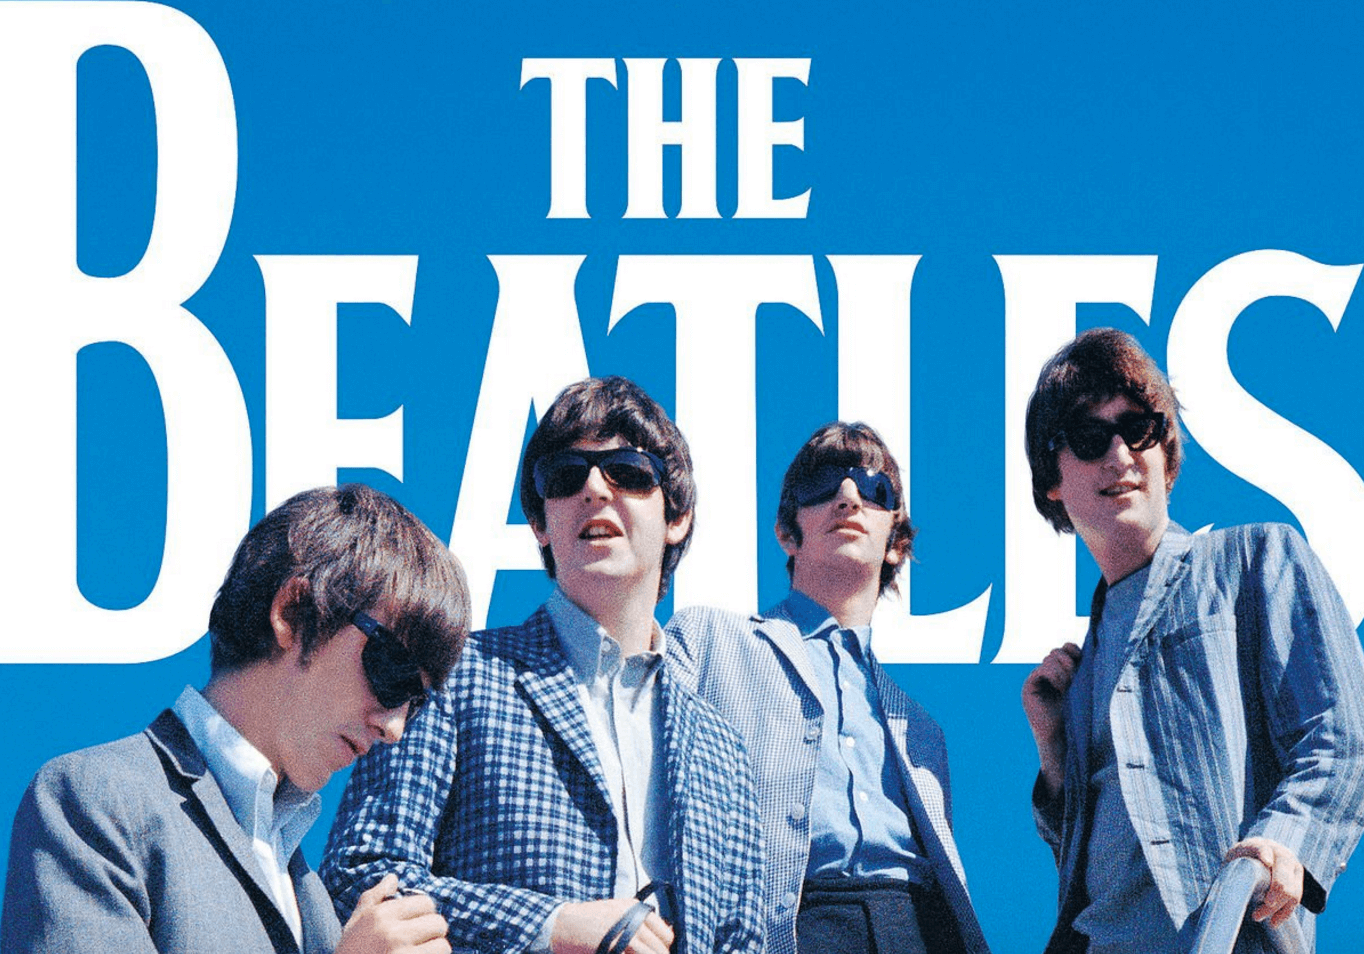 Beatles Live At The Hollywood Bowl Gets Remastered